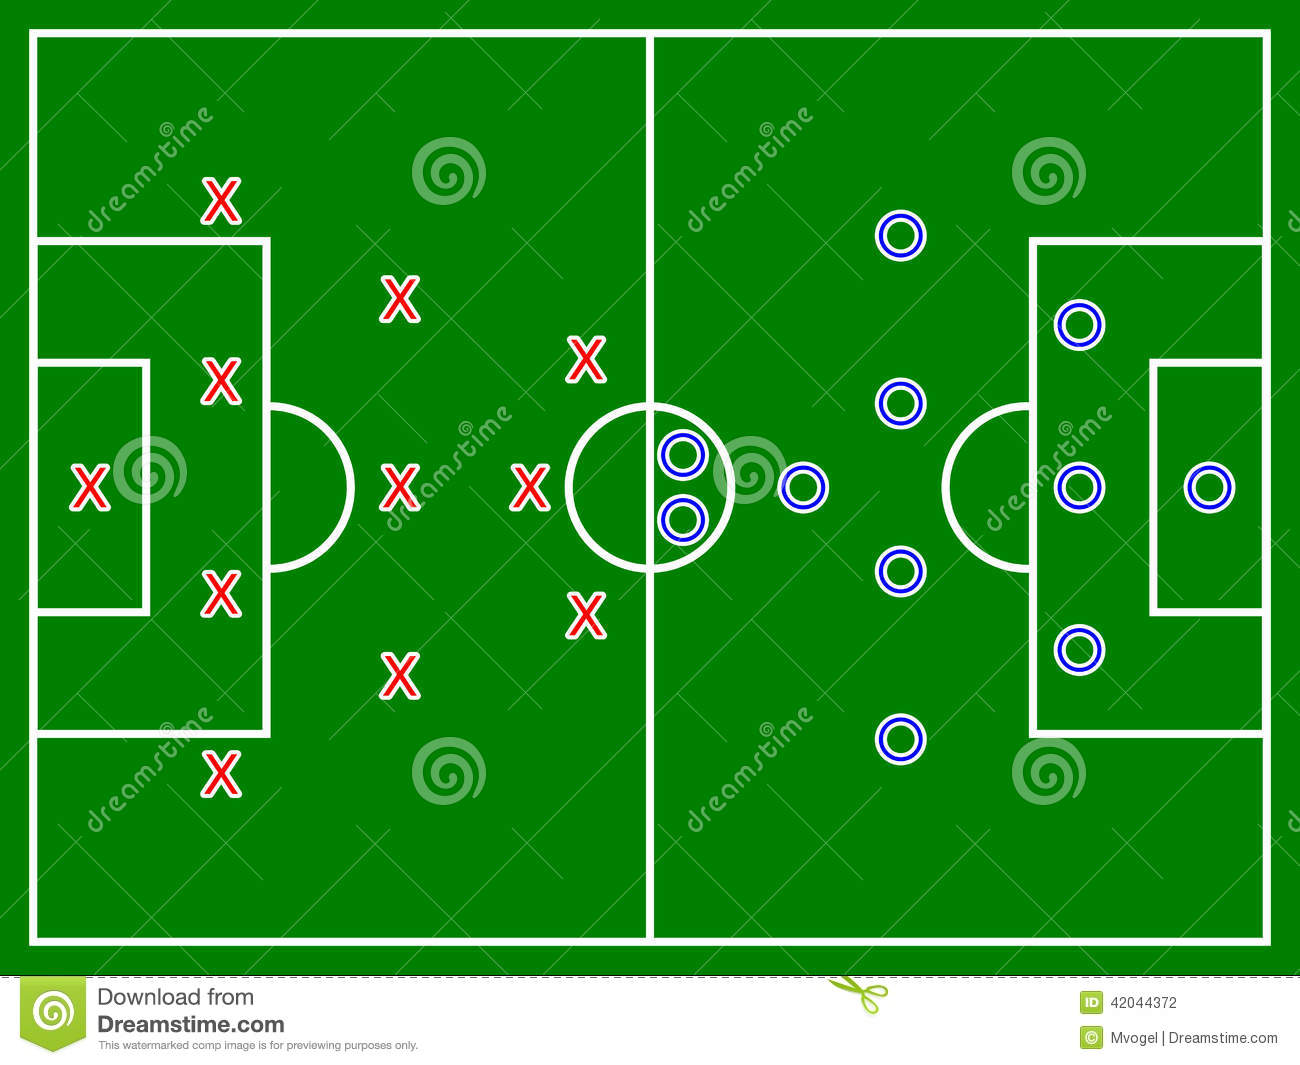 Football Soccer Field Diagram Stock Illustration Illustration Of